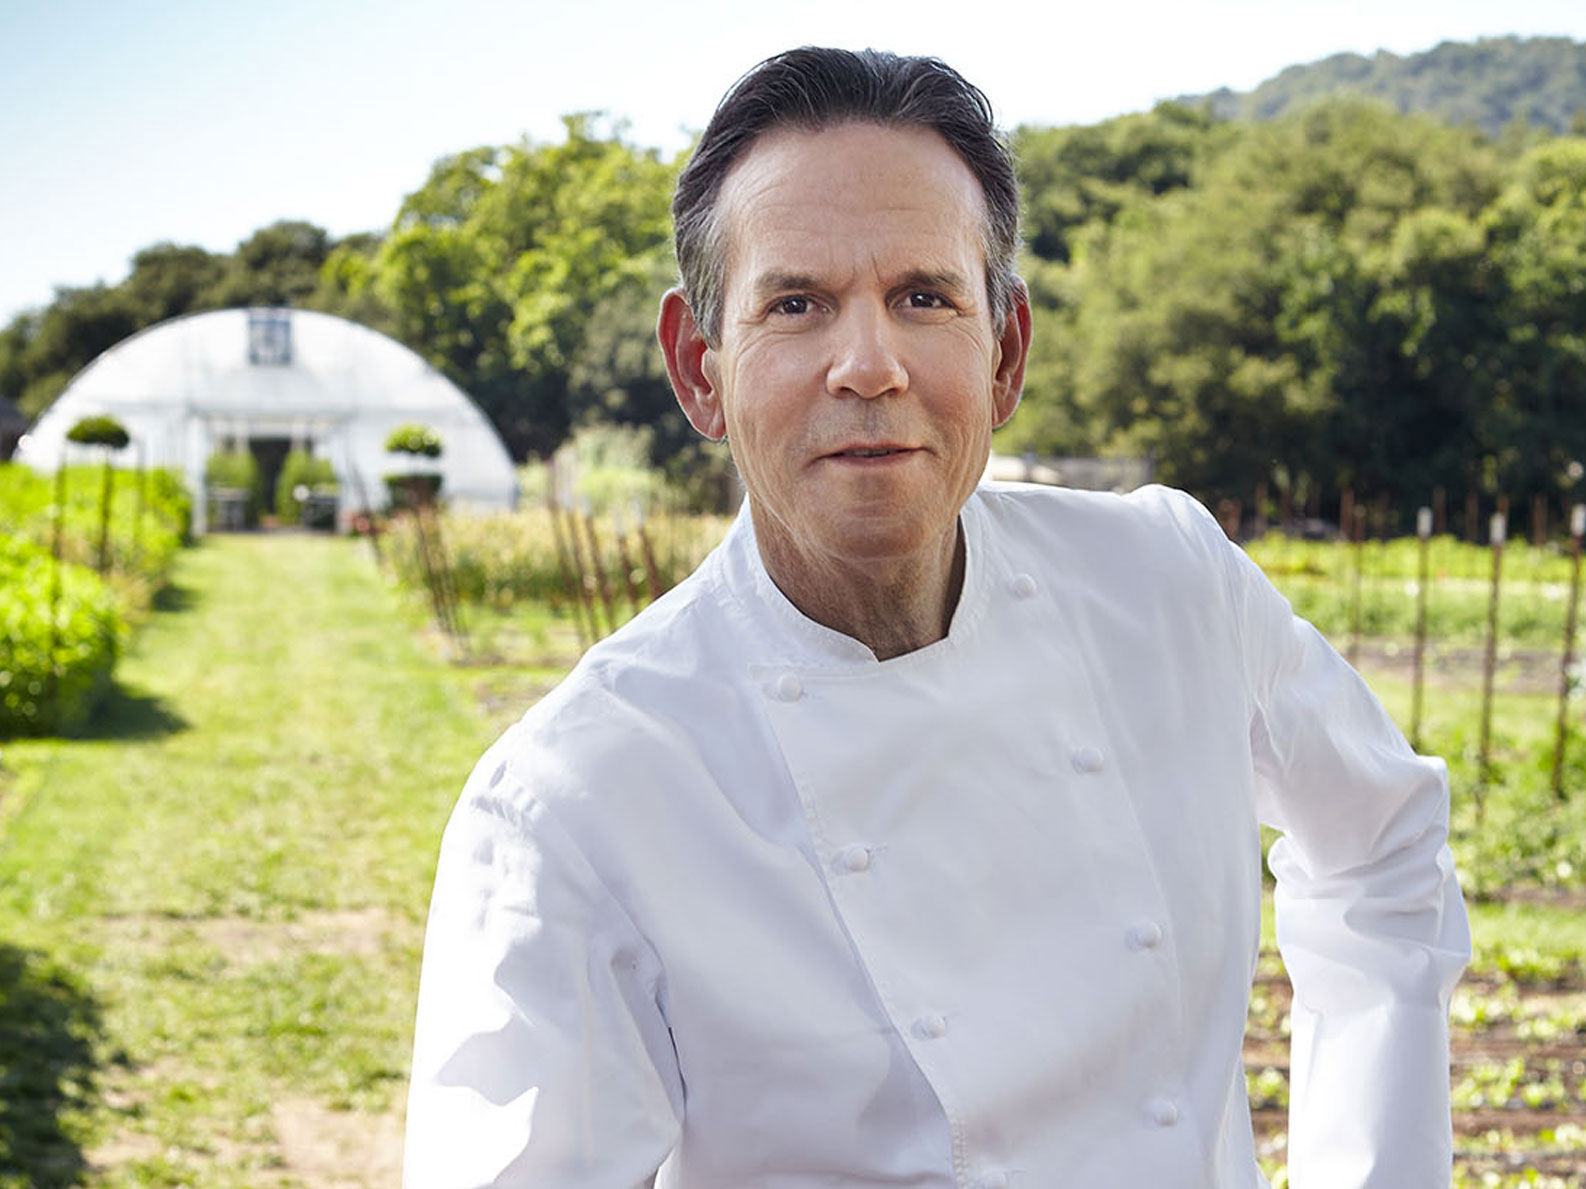 Thomas Keller Inducted into the California Hall of Fame